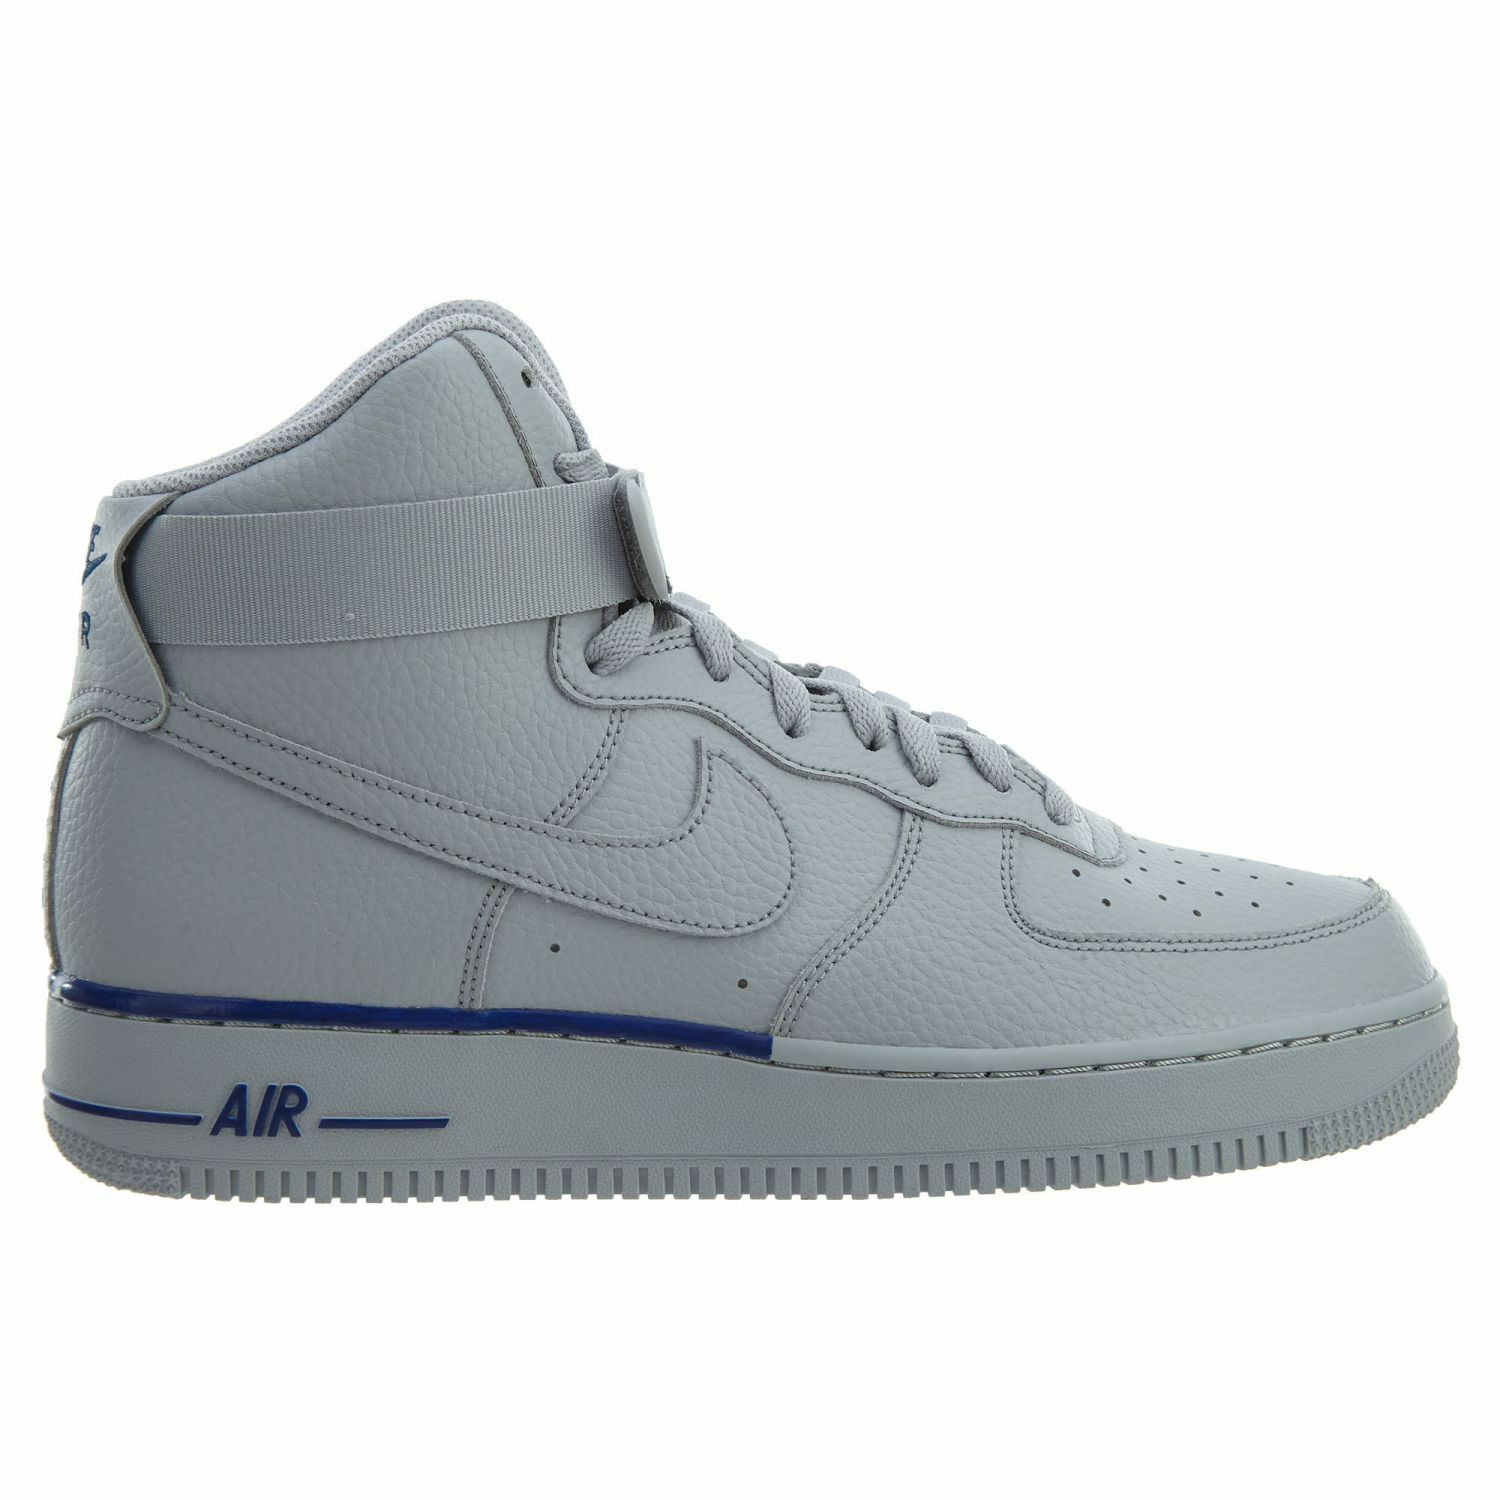 Nike Air Force 1 High '07 Mens 315121-045 Wolf Grey Deep Royal shoes Size 9